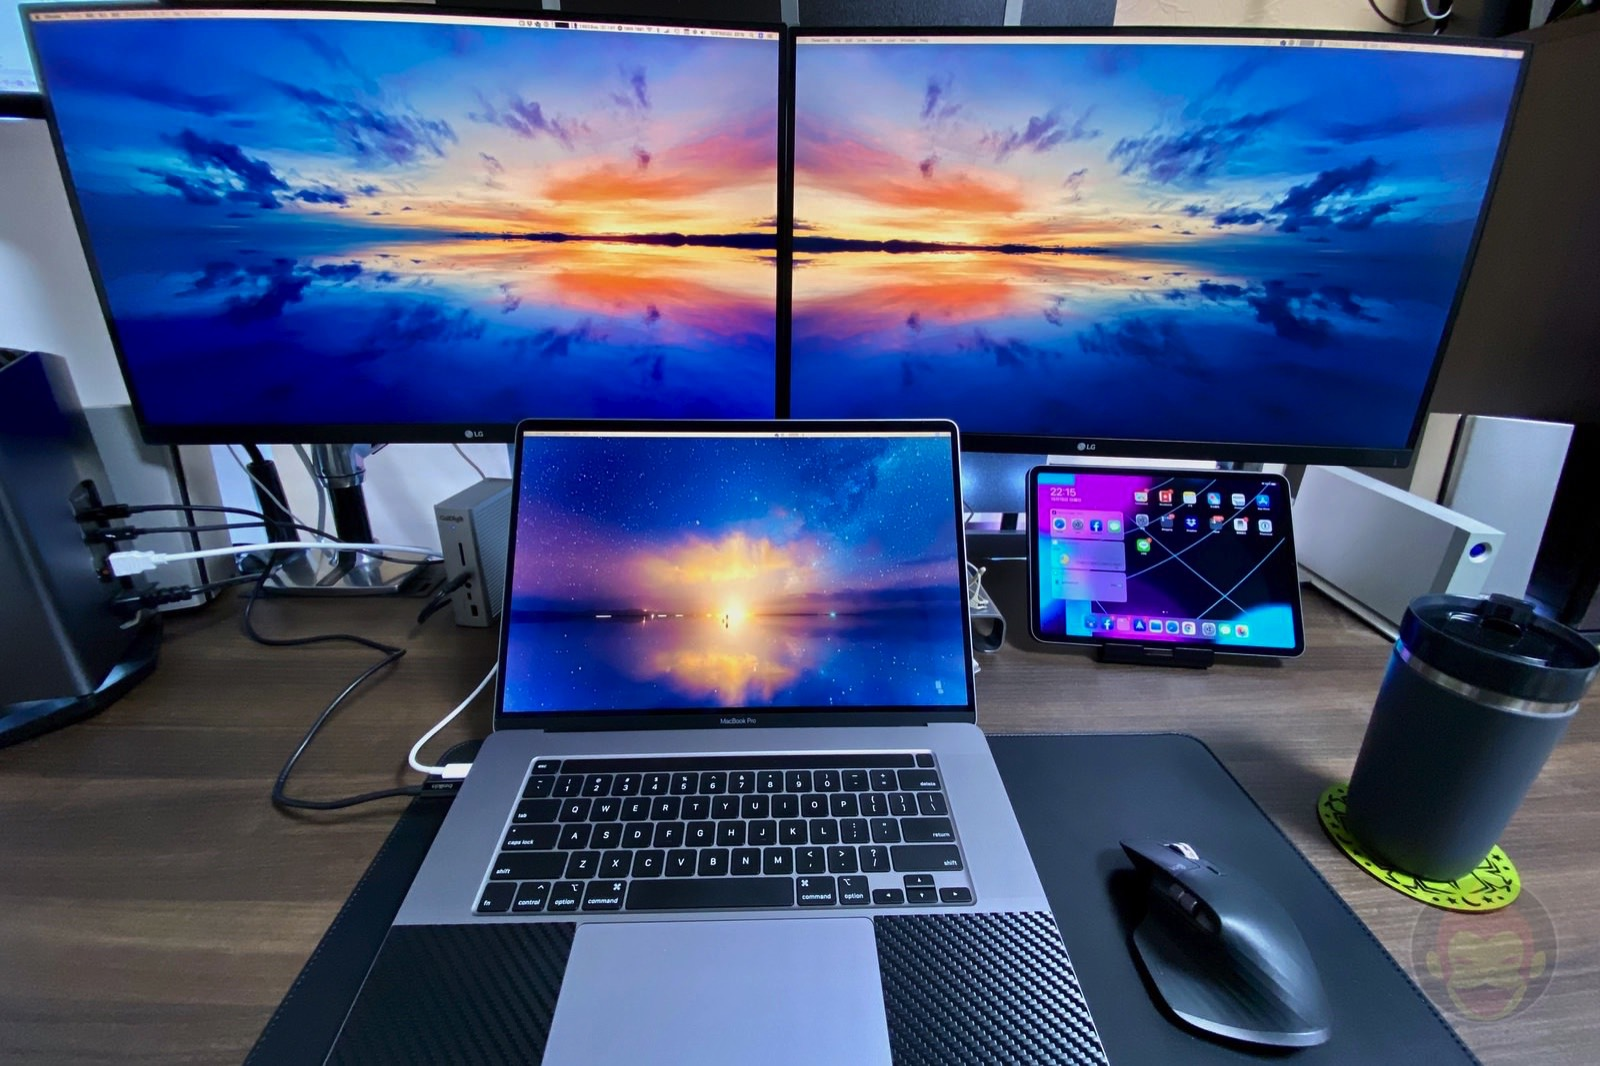 My-Desktop-after-buying-mbp2019-16inch-03.jpeg